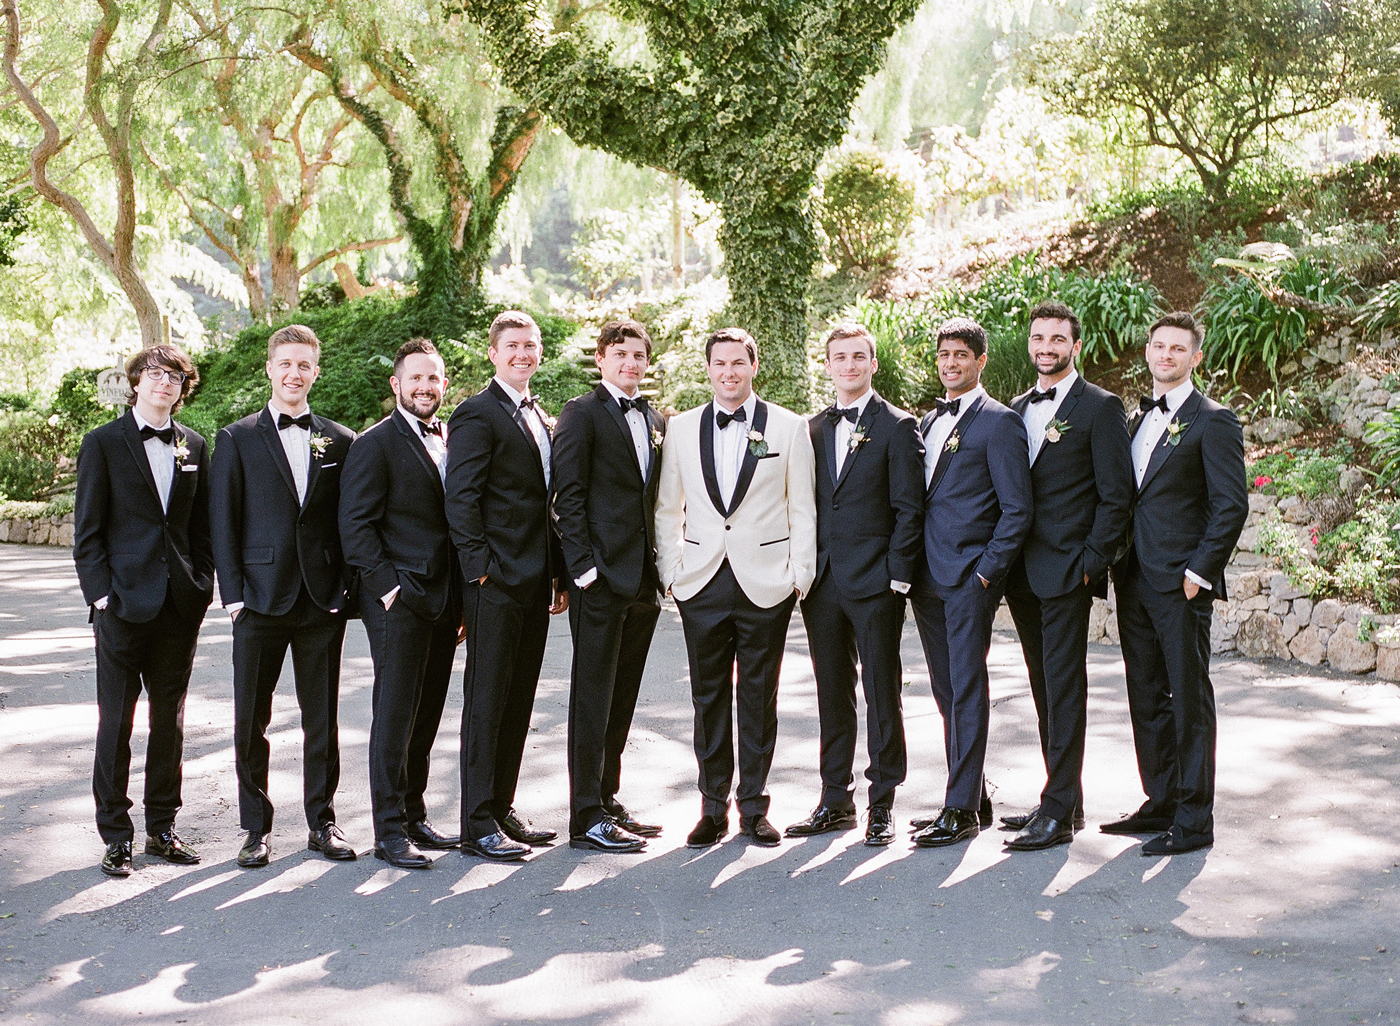 groom with groomsmen all wearing black suits and bowties